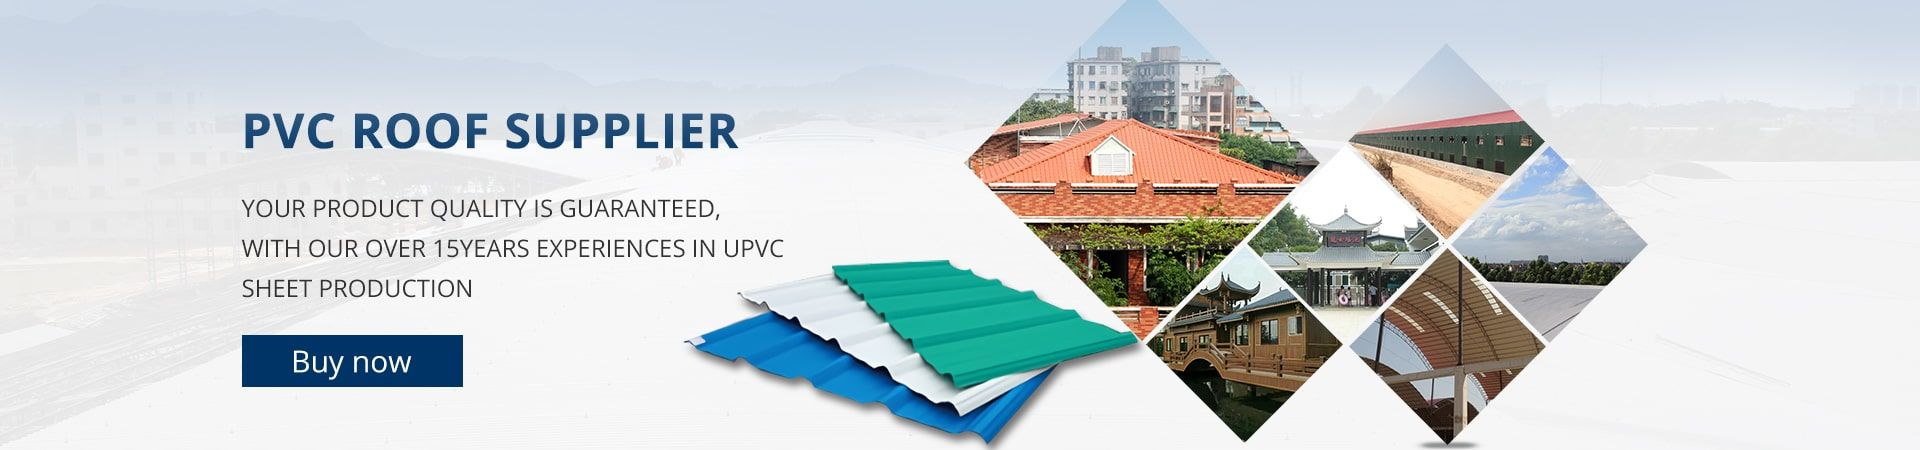 ASA PVC Roof Sheet, Corrugated Plastic Roofing Sheets Suppliers & Manufacturers